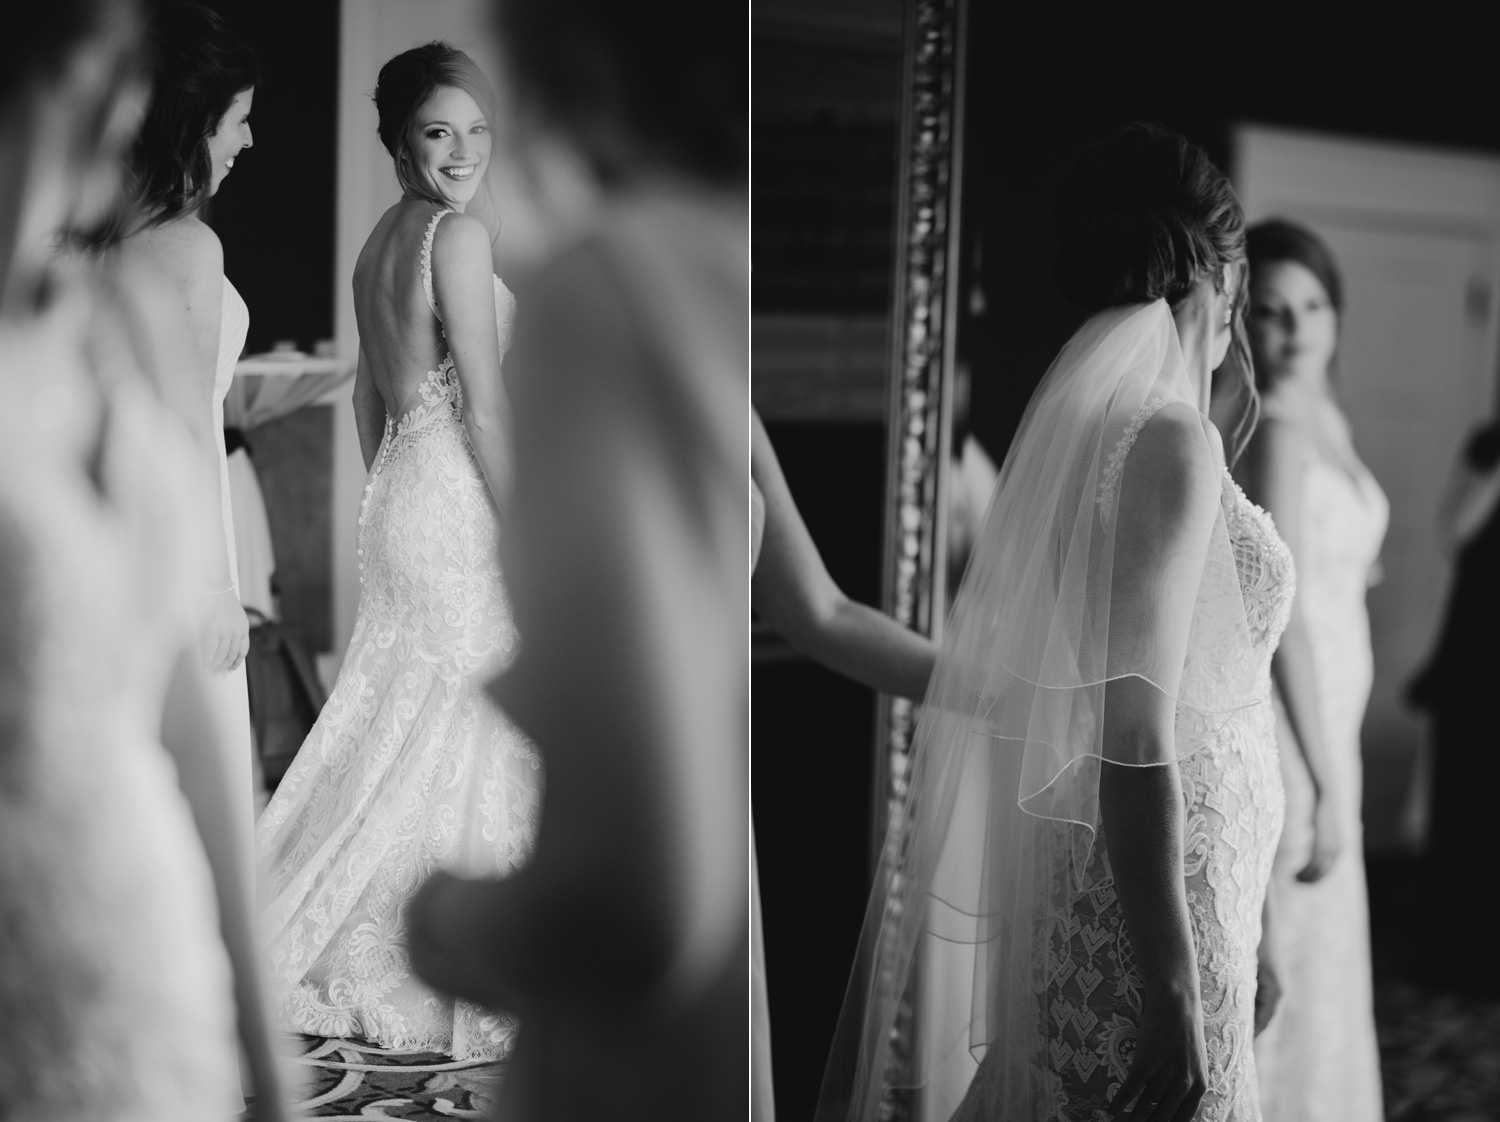 Bride checking herself out in the mirror